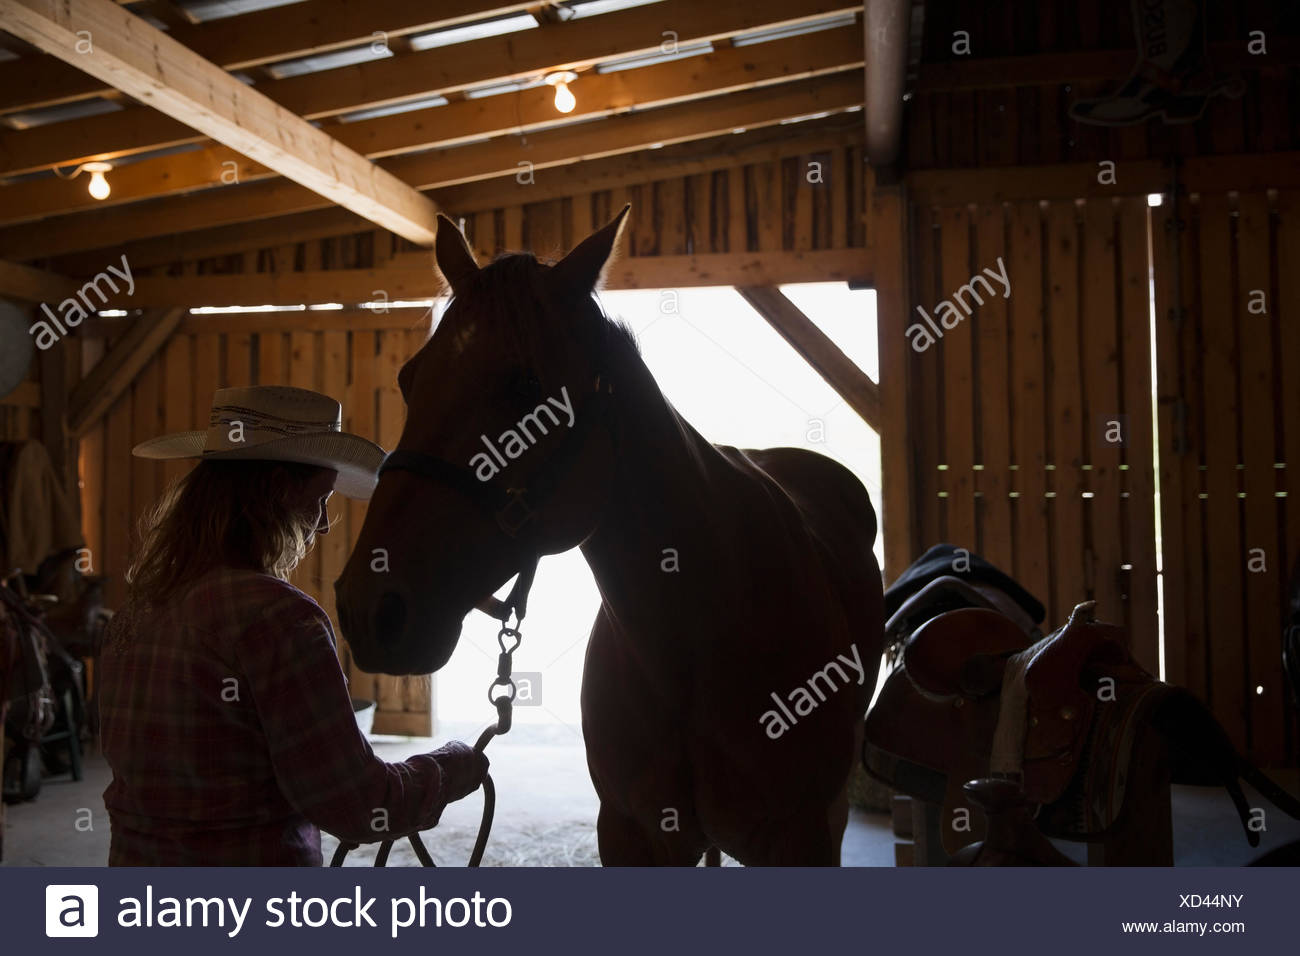 Silhouette of female rancher with horse in stable - Stock Image